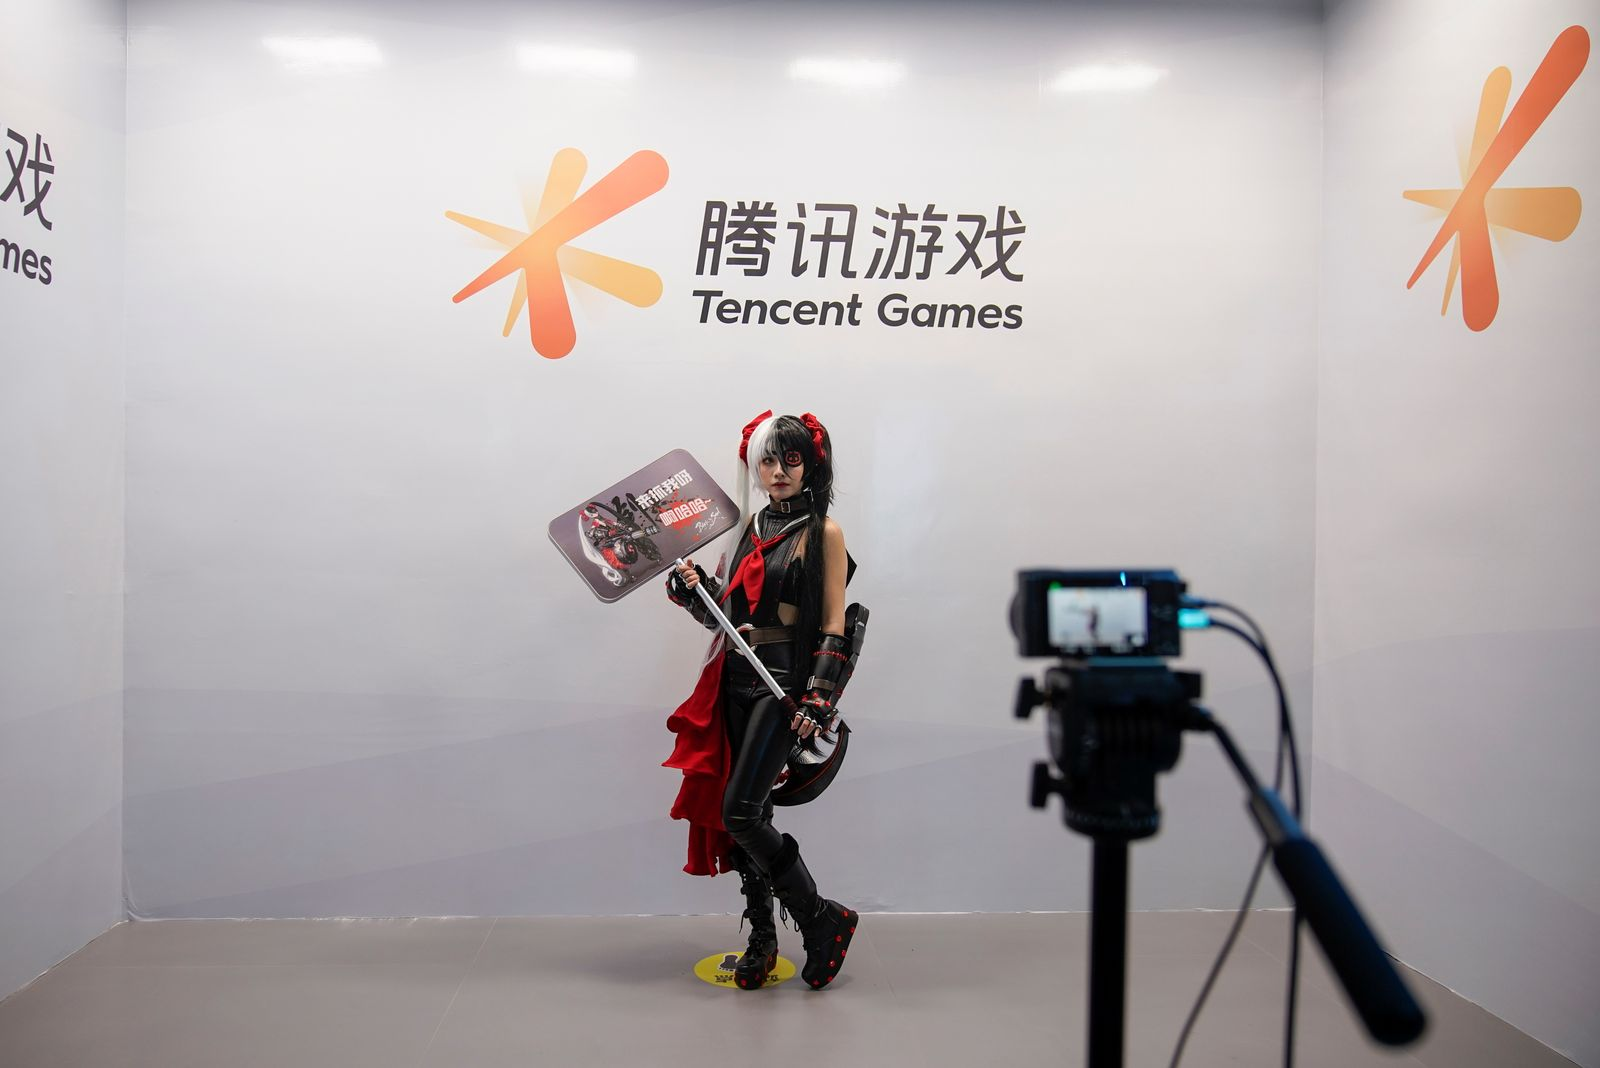 A cosplay fan poses for a photo at a Tencent Games booth during the China Digital Entertainment Expo and Conference, also known as ChinaJoy, in Shanghai